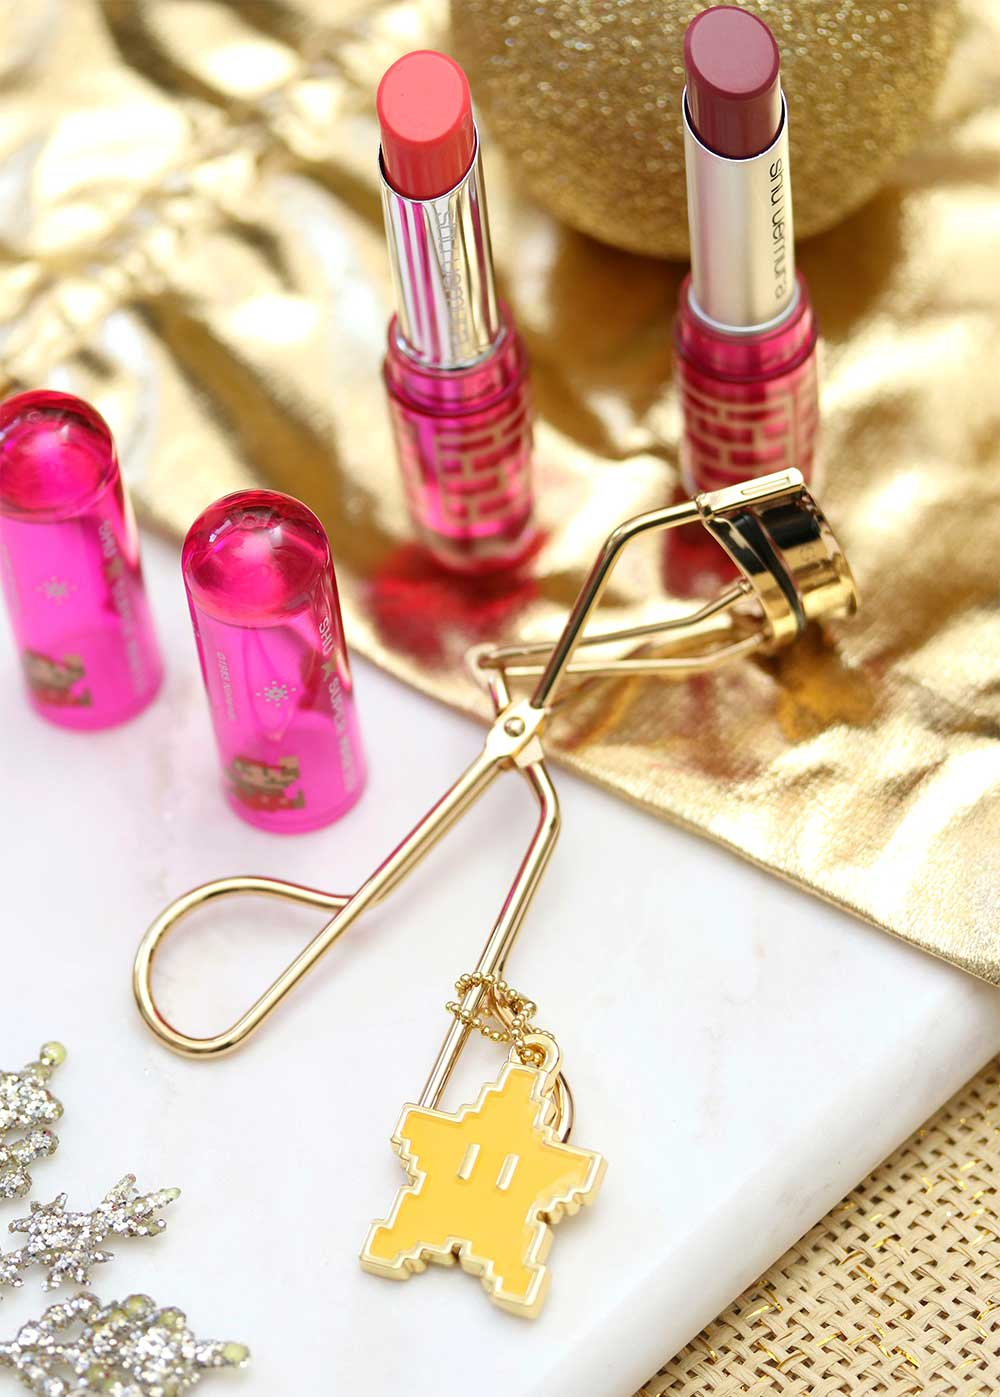 super mario makeup collection shu uemura lash curler